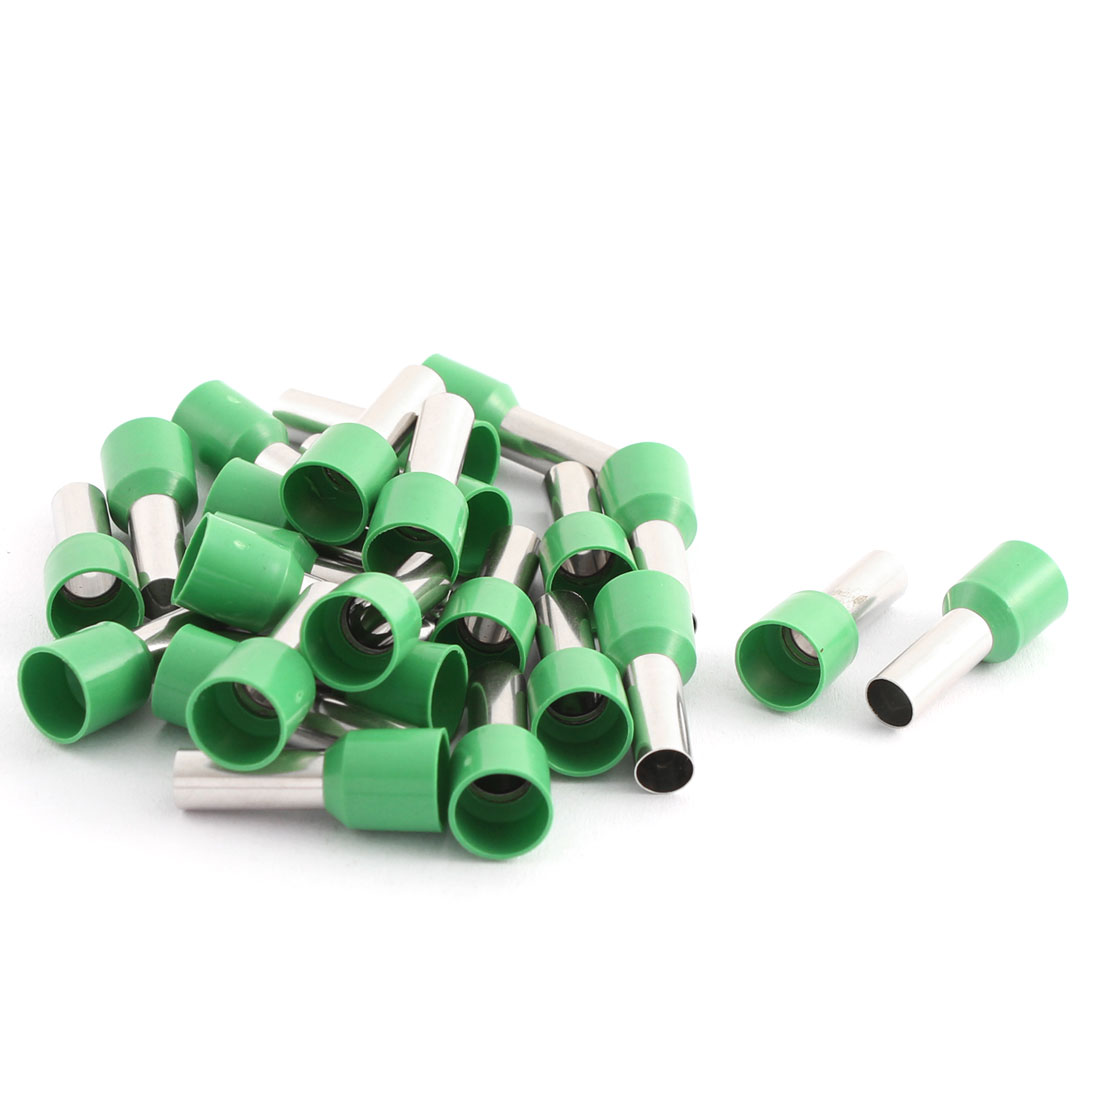 25 Pcs 10mm2 Crimp Wire End Terminal Insulated Bootlace Ferrule Connector Green